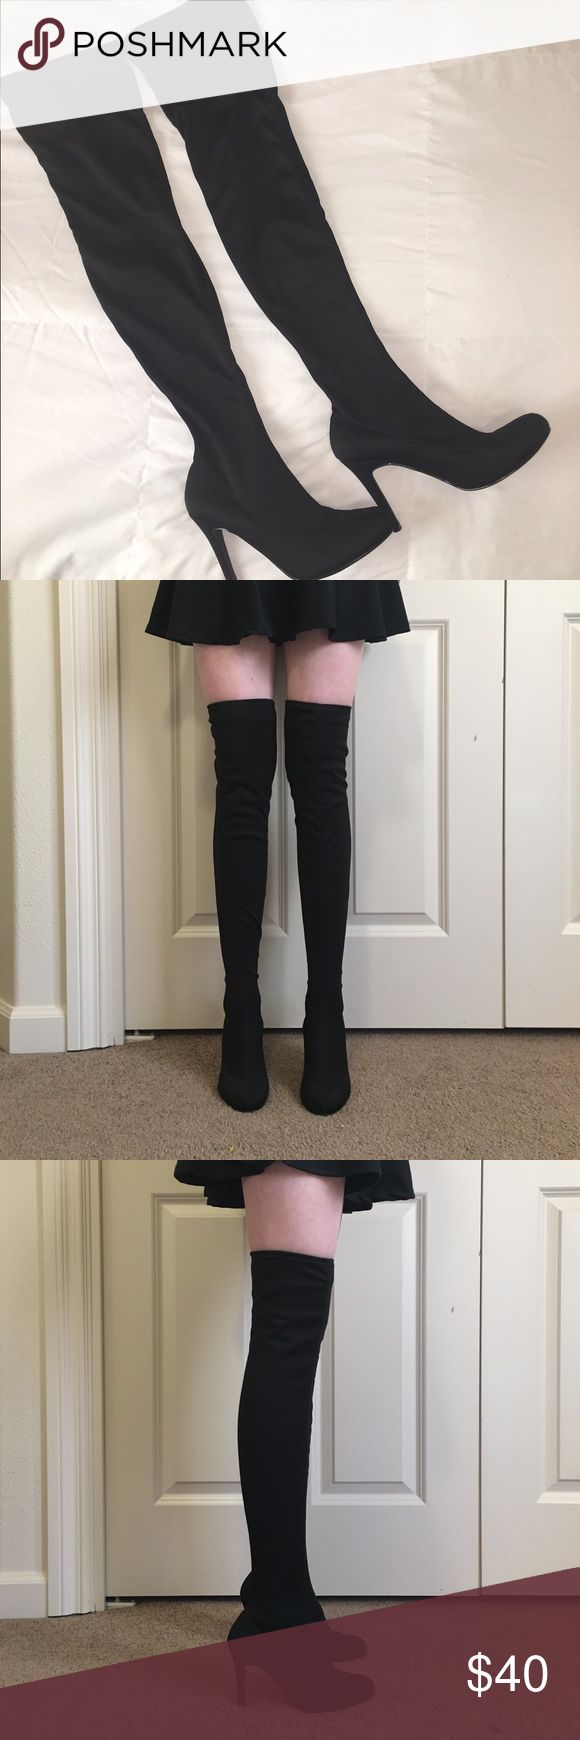 Colin Stuart Thigh High Boots Colin Stuart Thigh High Boots! Only been worn a few times. The heels are 4 inches and the boots are mid thigh on me. Price is negotiable. Please let me know if you have any questions. Colin Stuart Shoes Over the Knee Boots